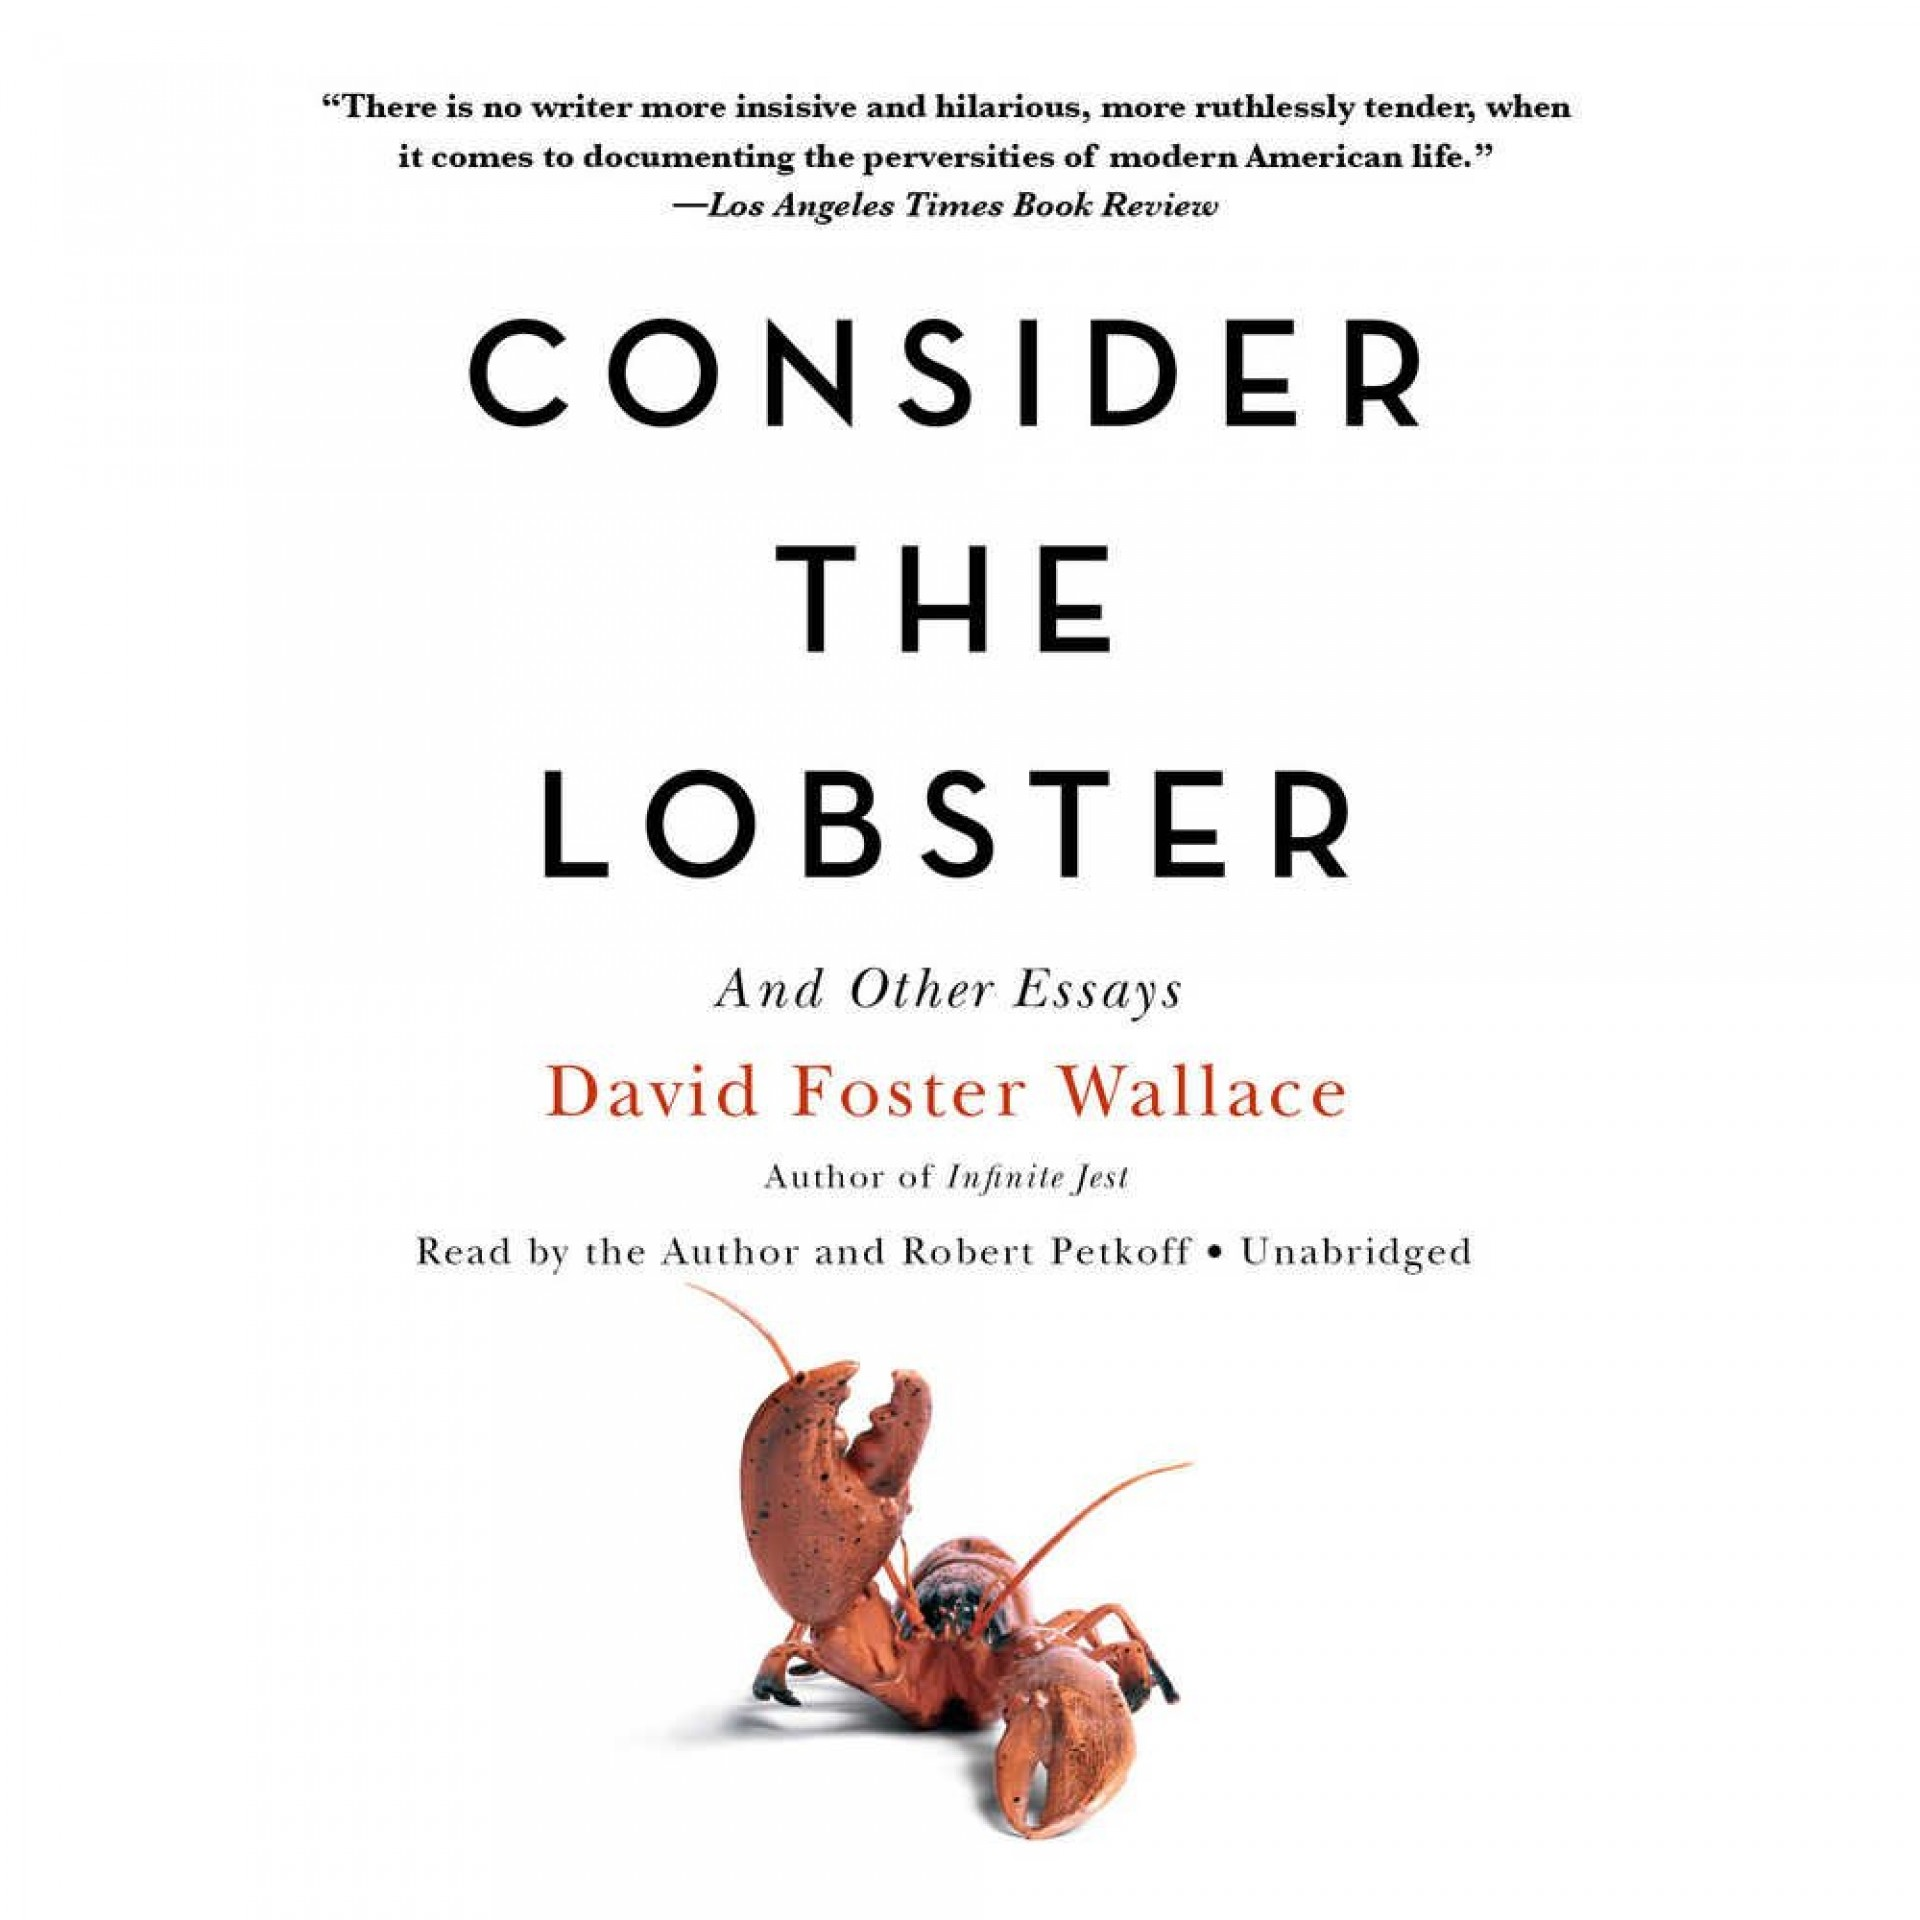 004 Essay Example 617nvtvarcl Consider The Exceptional Lobster Rhetorical Analysis And Other Essays Summary 1920